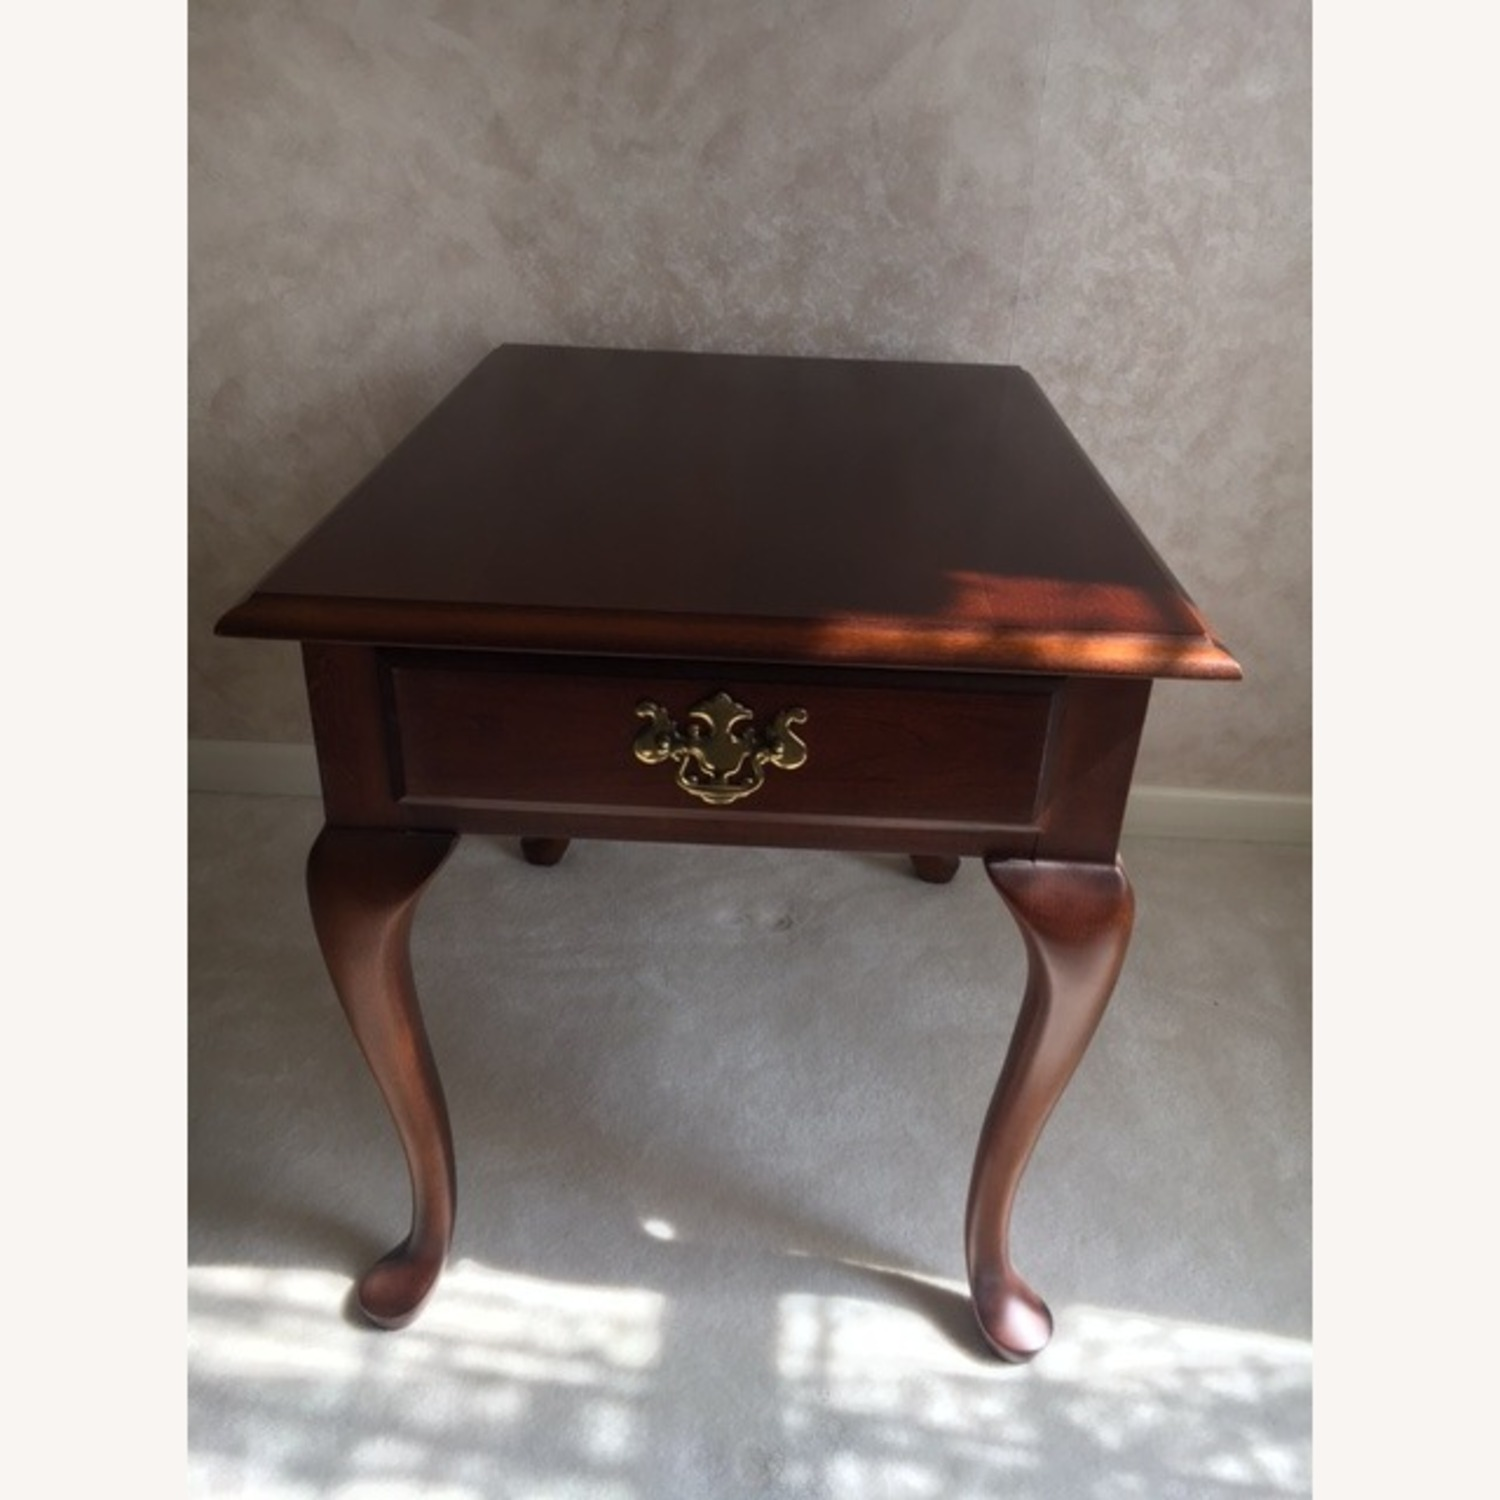 Thomasville Winston Court End Tables (2) - image-1